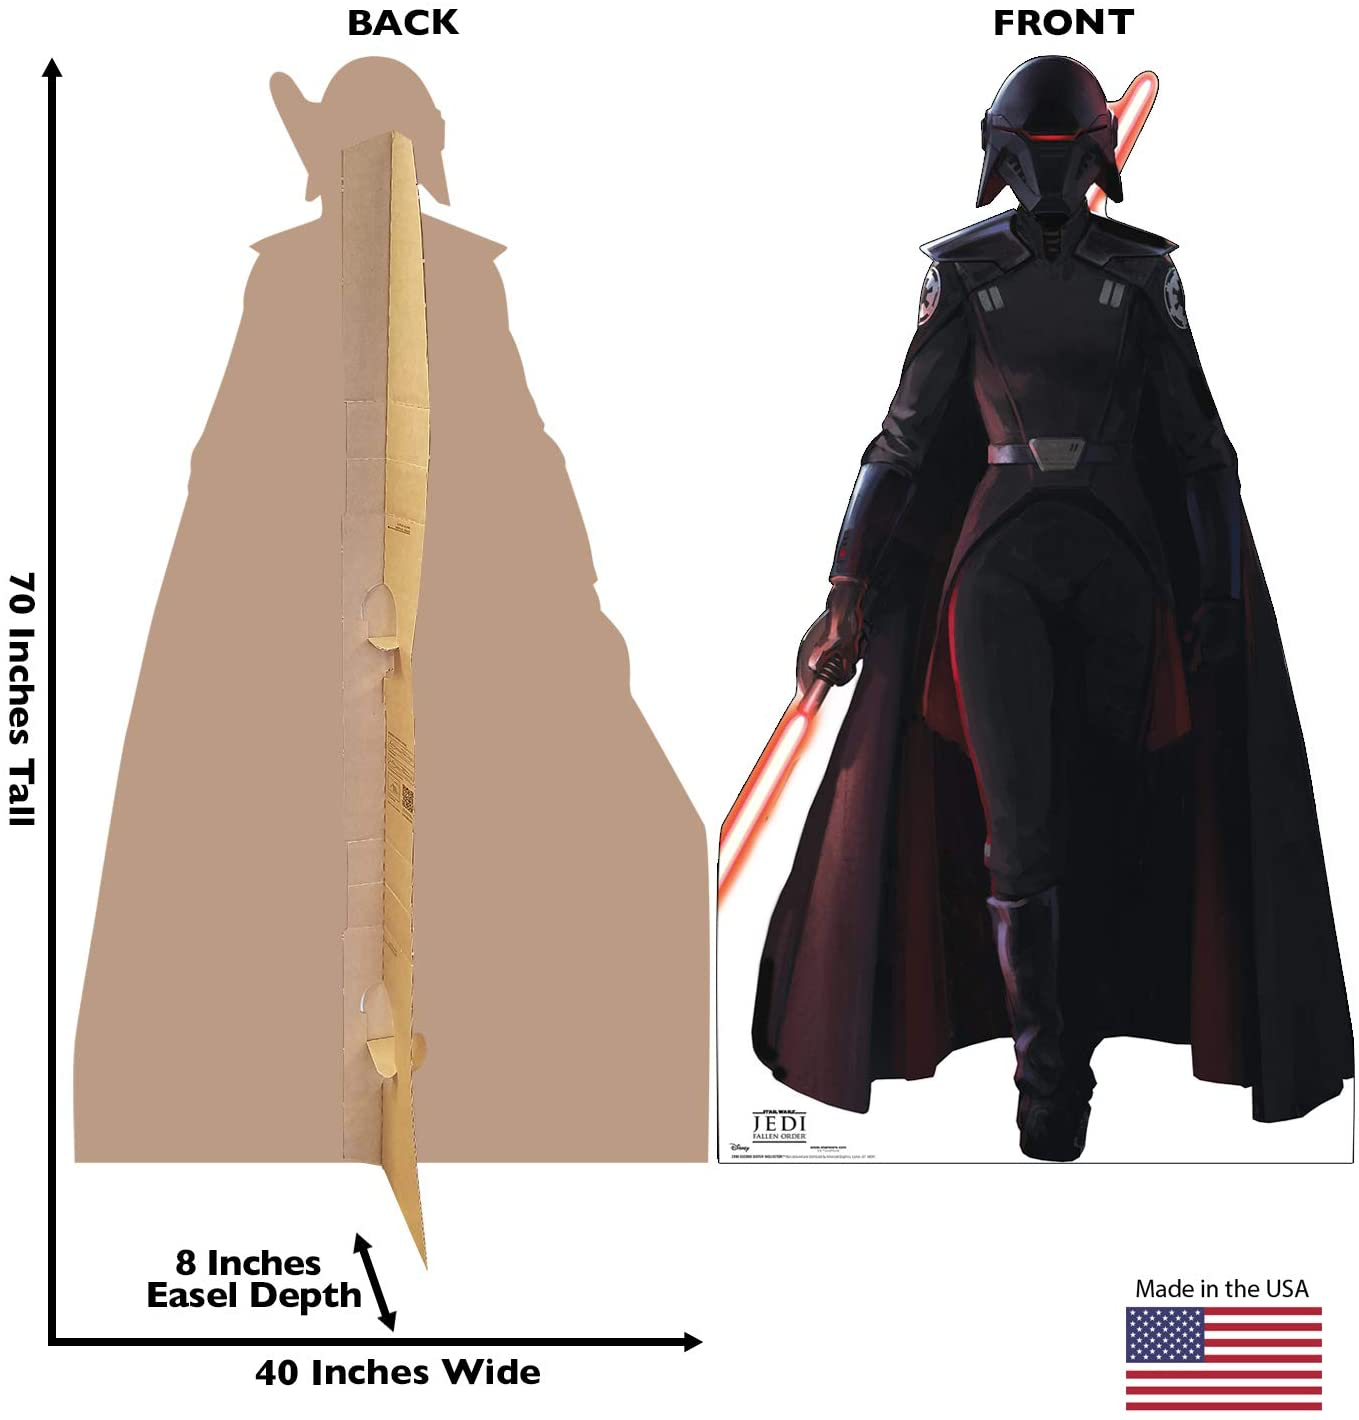 JFO Second Sister Inquisitor Cardboard Standee 2